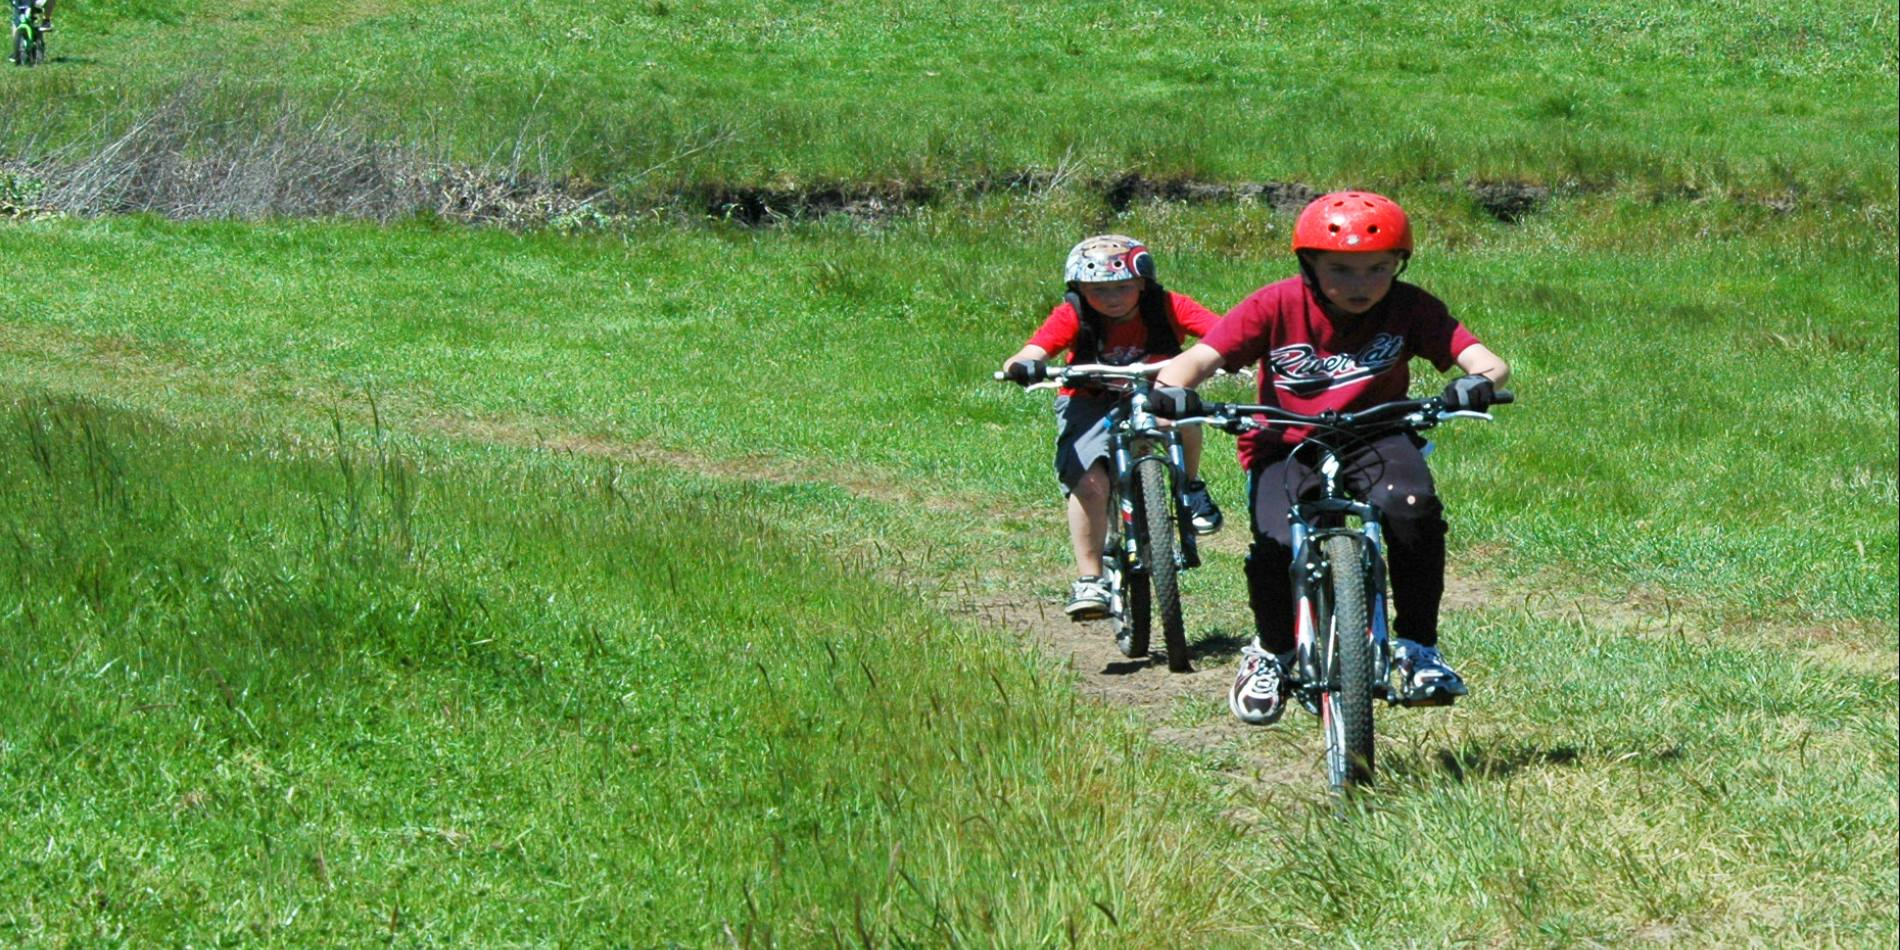 Both Lynch Canyon and Rockville Hills are popular parks for mountain bikers of all ages and skill